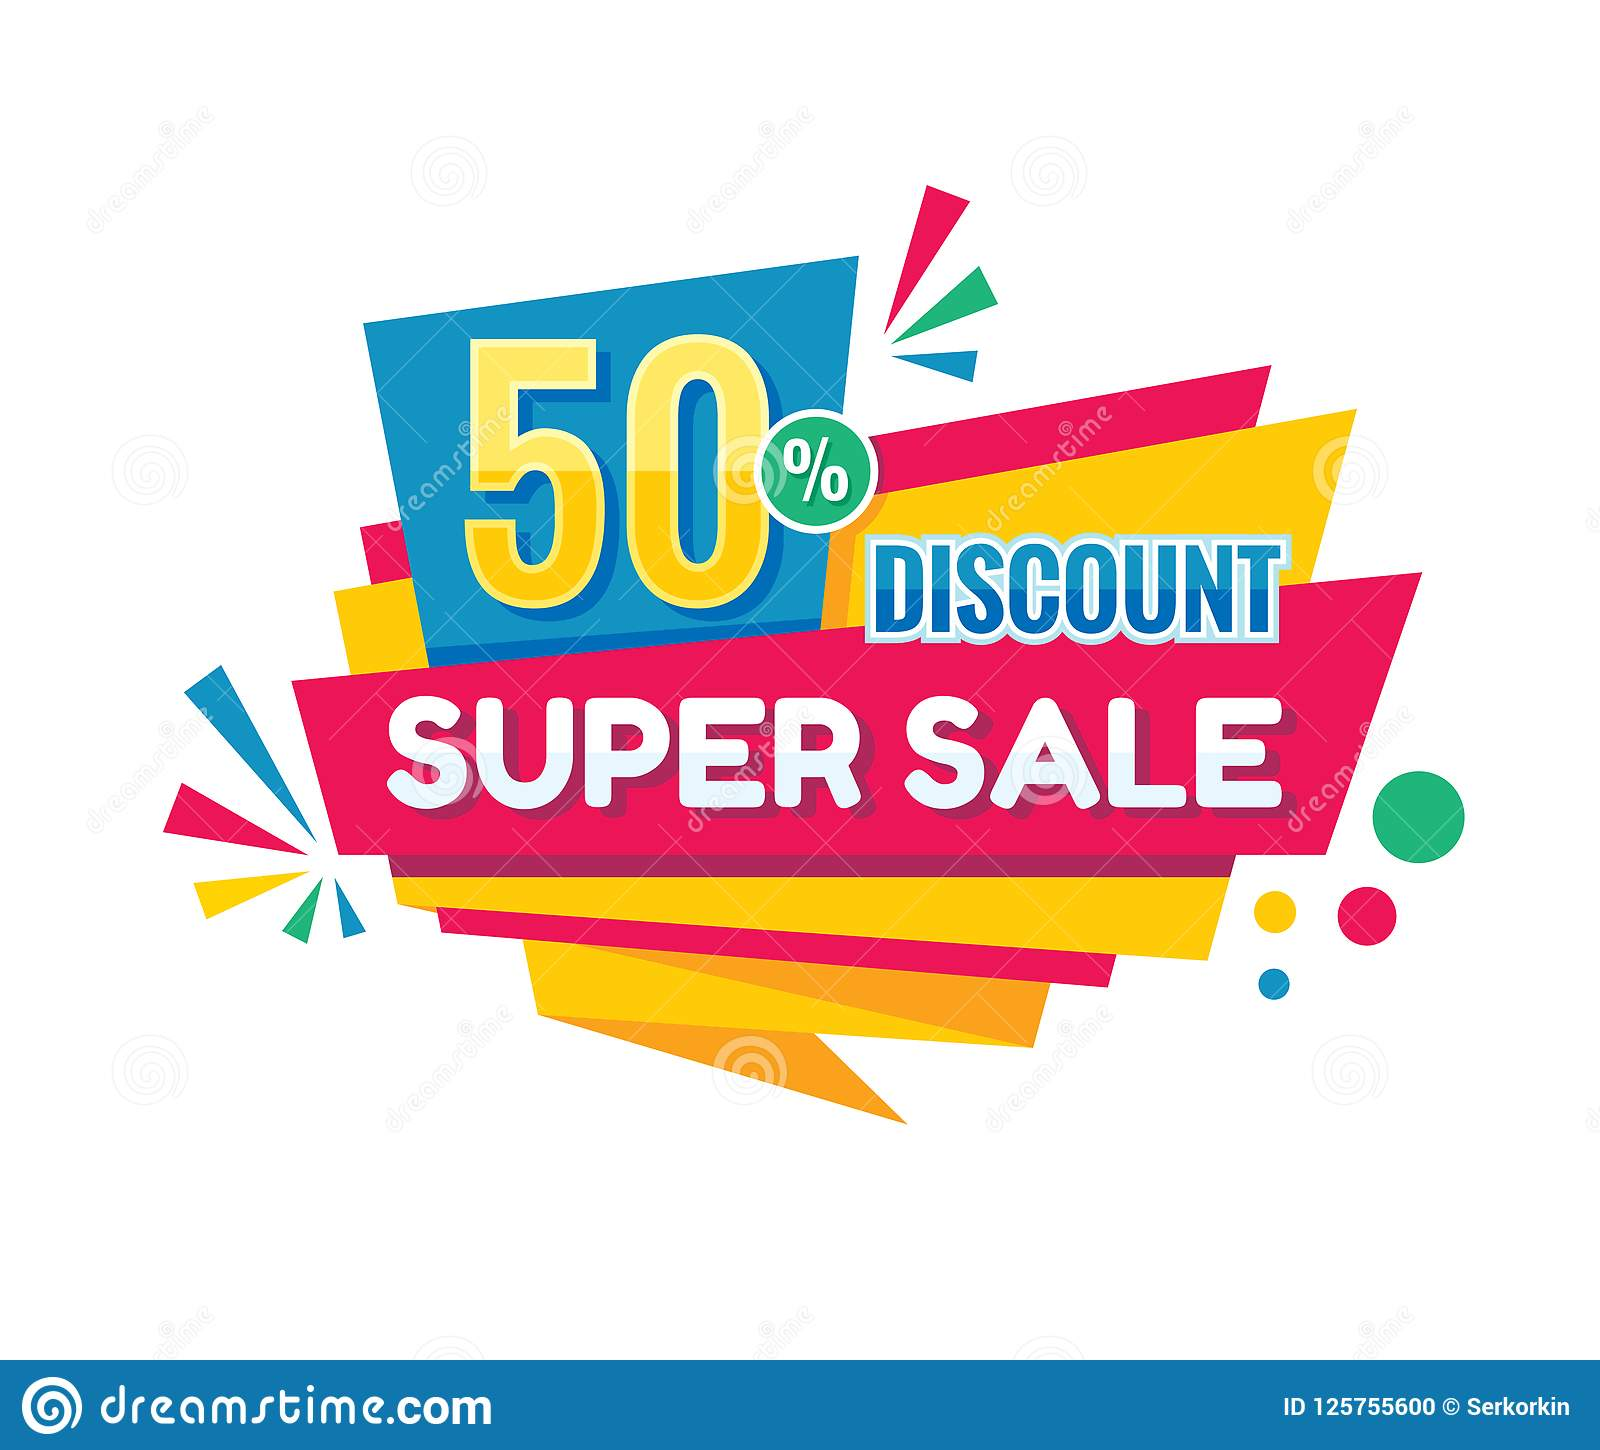 Super sale - vector creative banner illustration. Abstract concept discount 50  promotion layout on white background. Sticker.